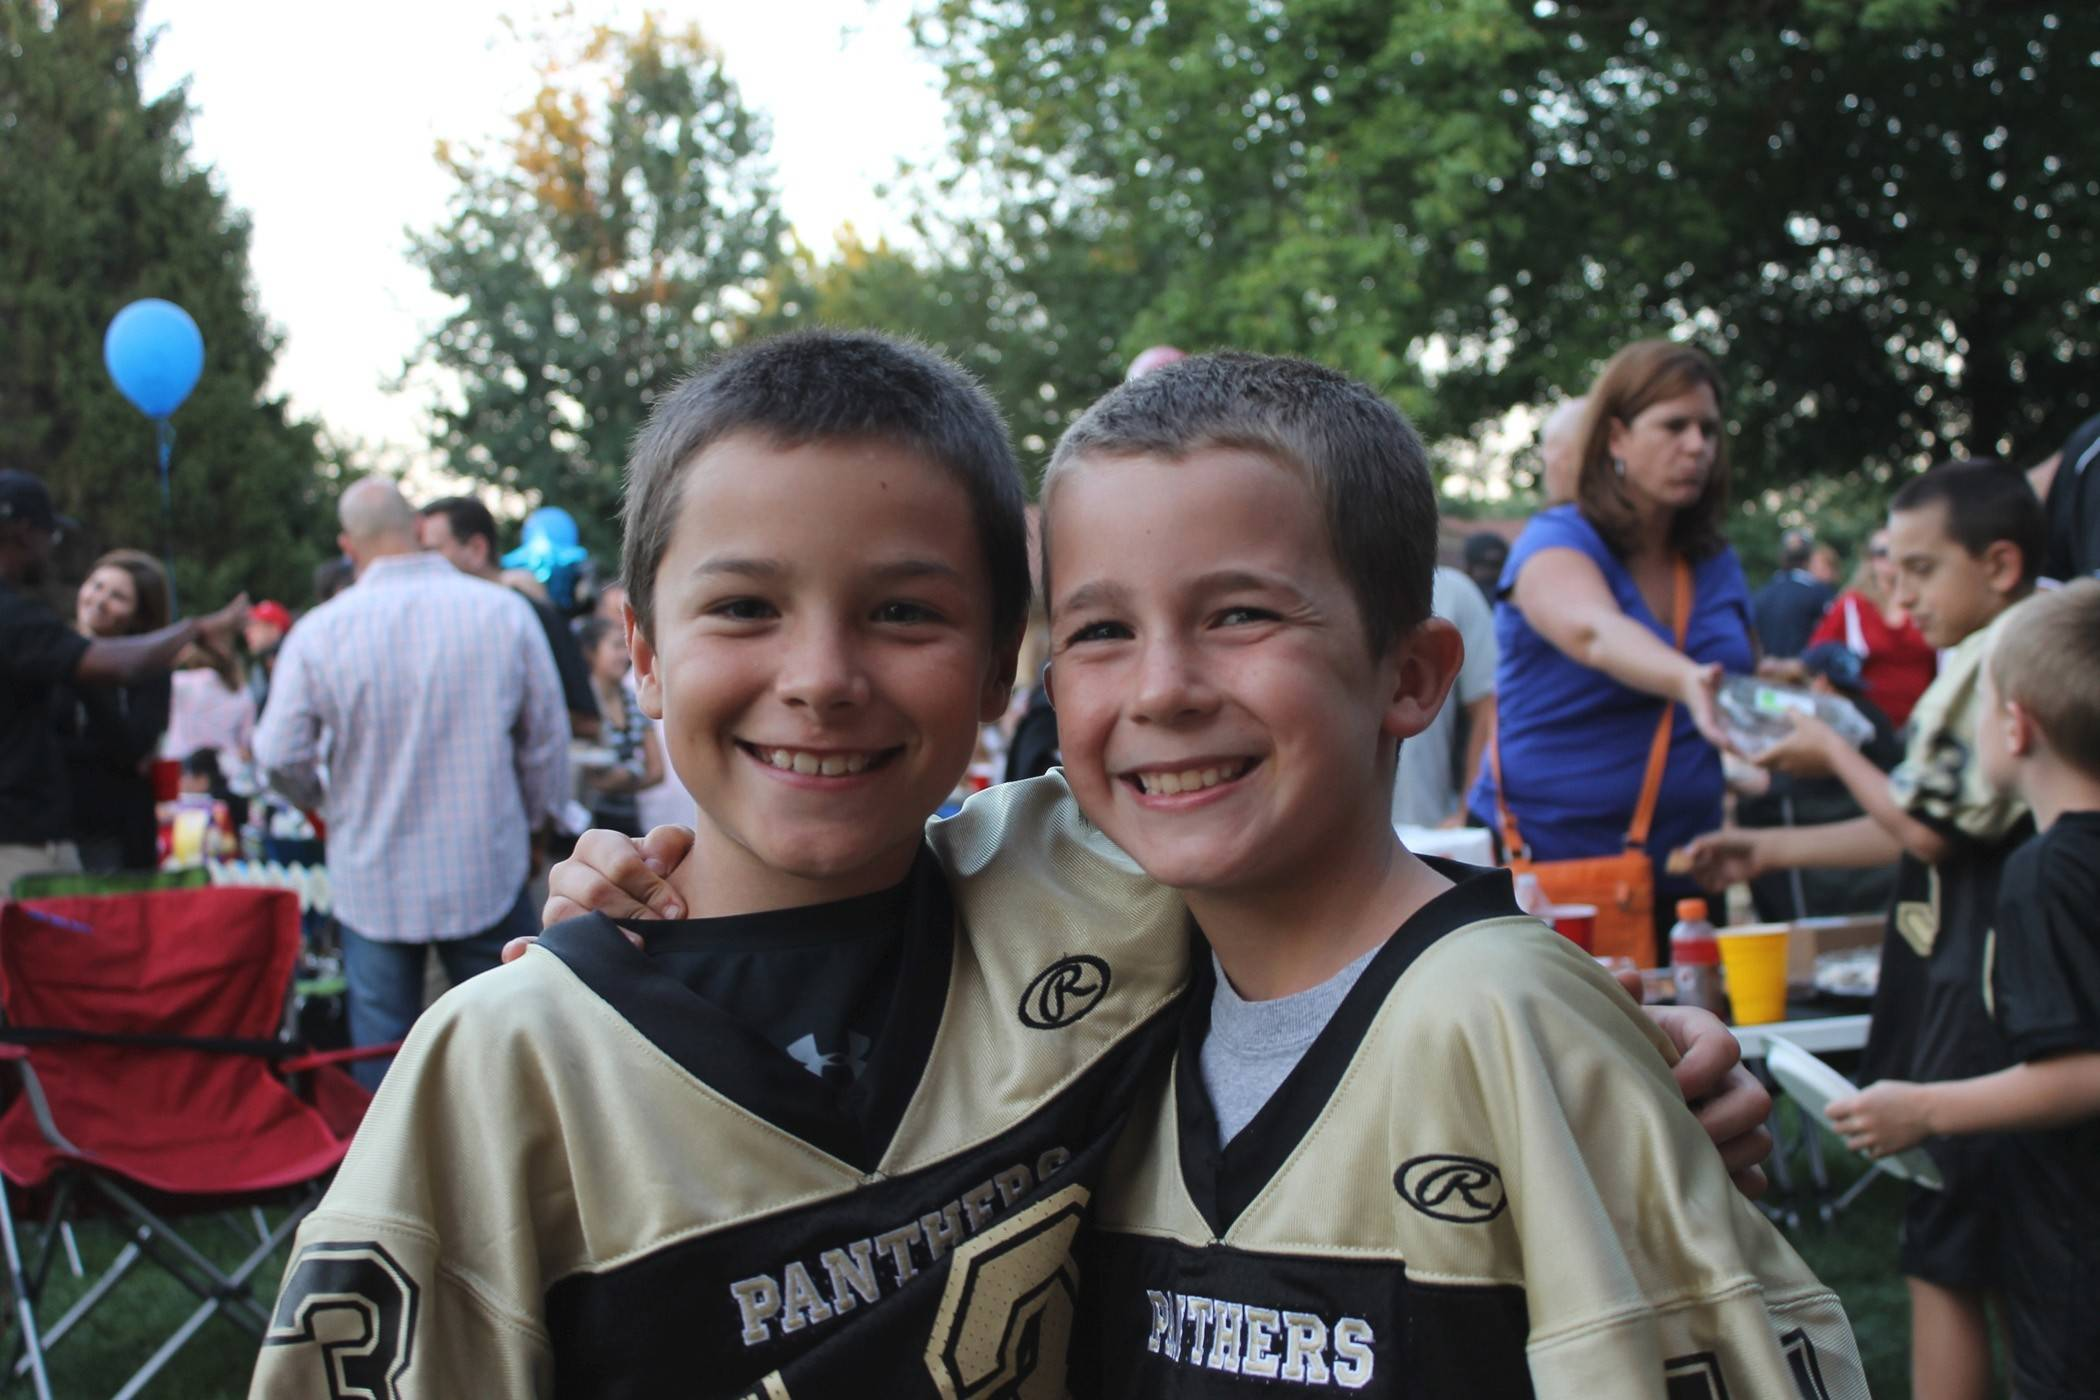 PAFA players enjoy festivities in the park with family and friends. Besides coaching and player development, camaraderie among the players and a wide variety of family events throughout the season sets the PAFA program apart from others.